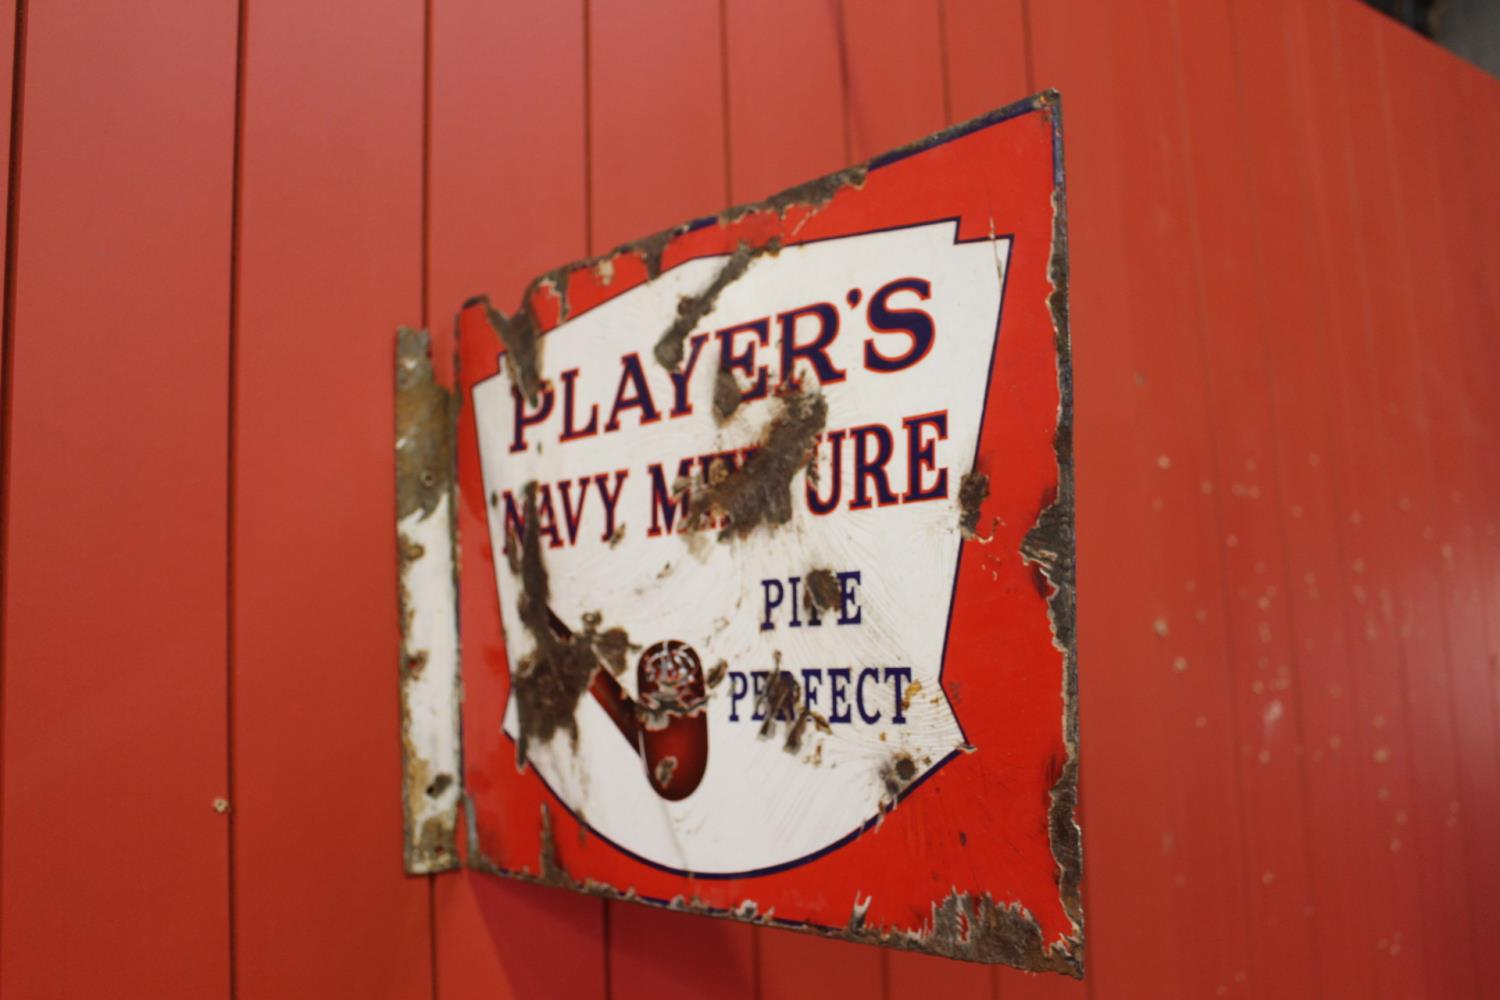 Extremely rare Player's Navy Mixture Pipe Perfect - Image 2 of 3